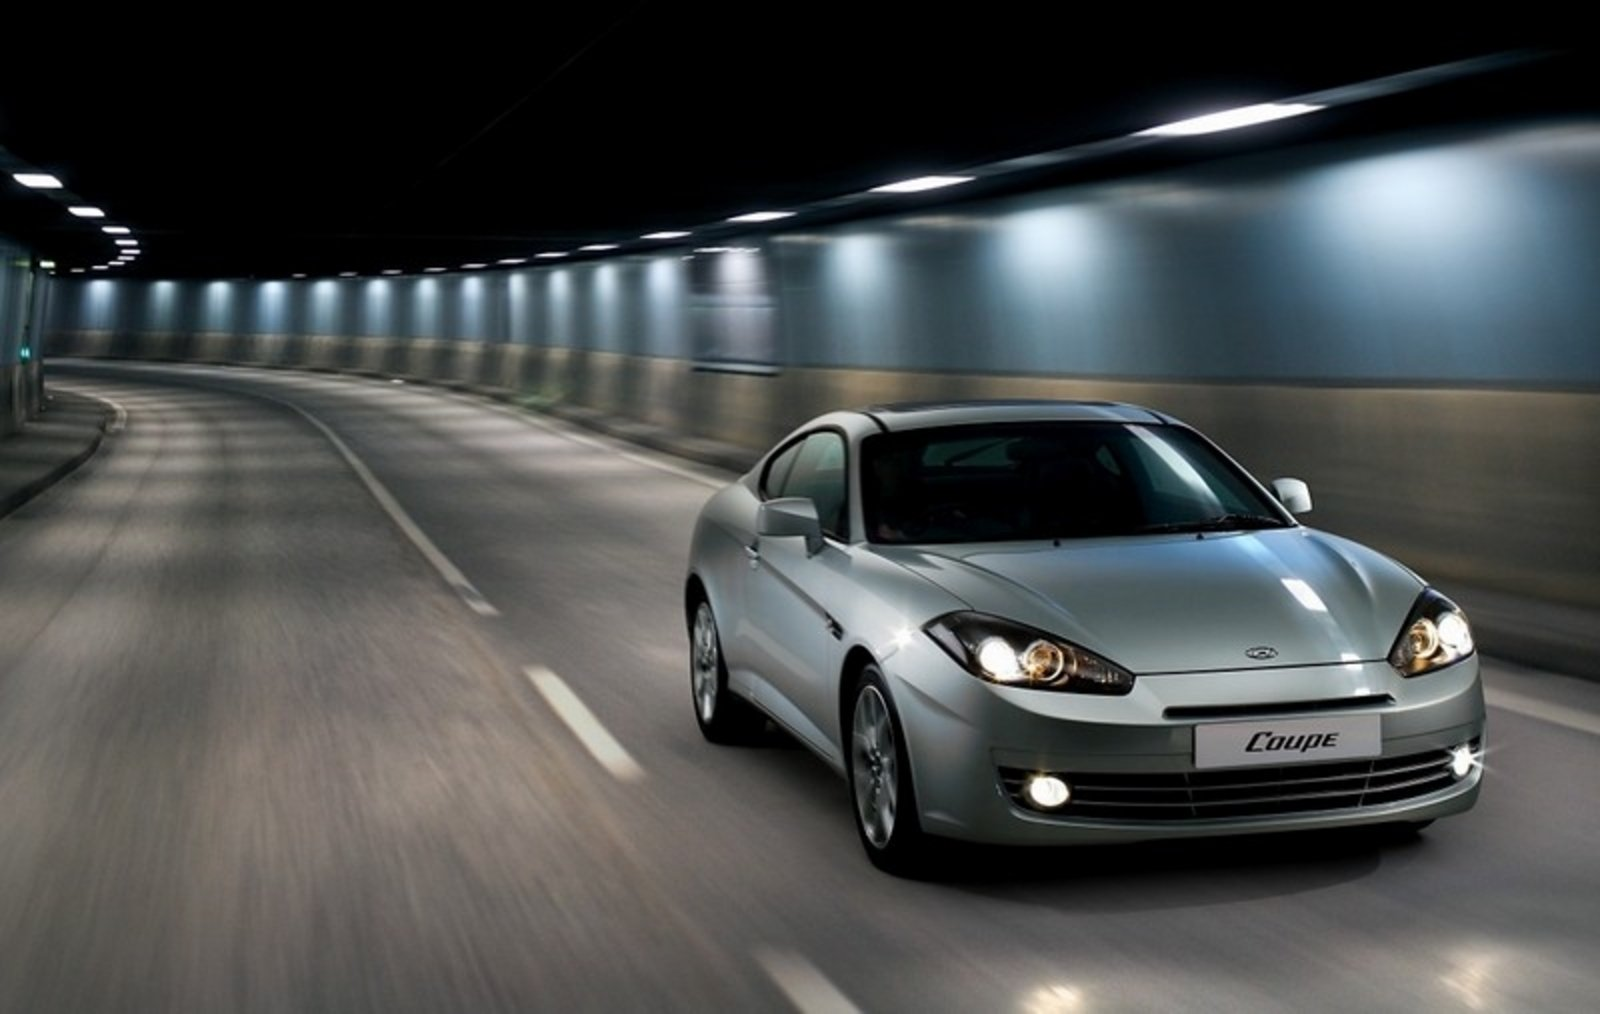 2007 Hyundai Coupe Siii Review Top Speed